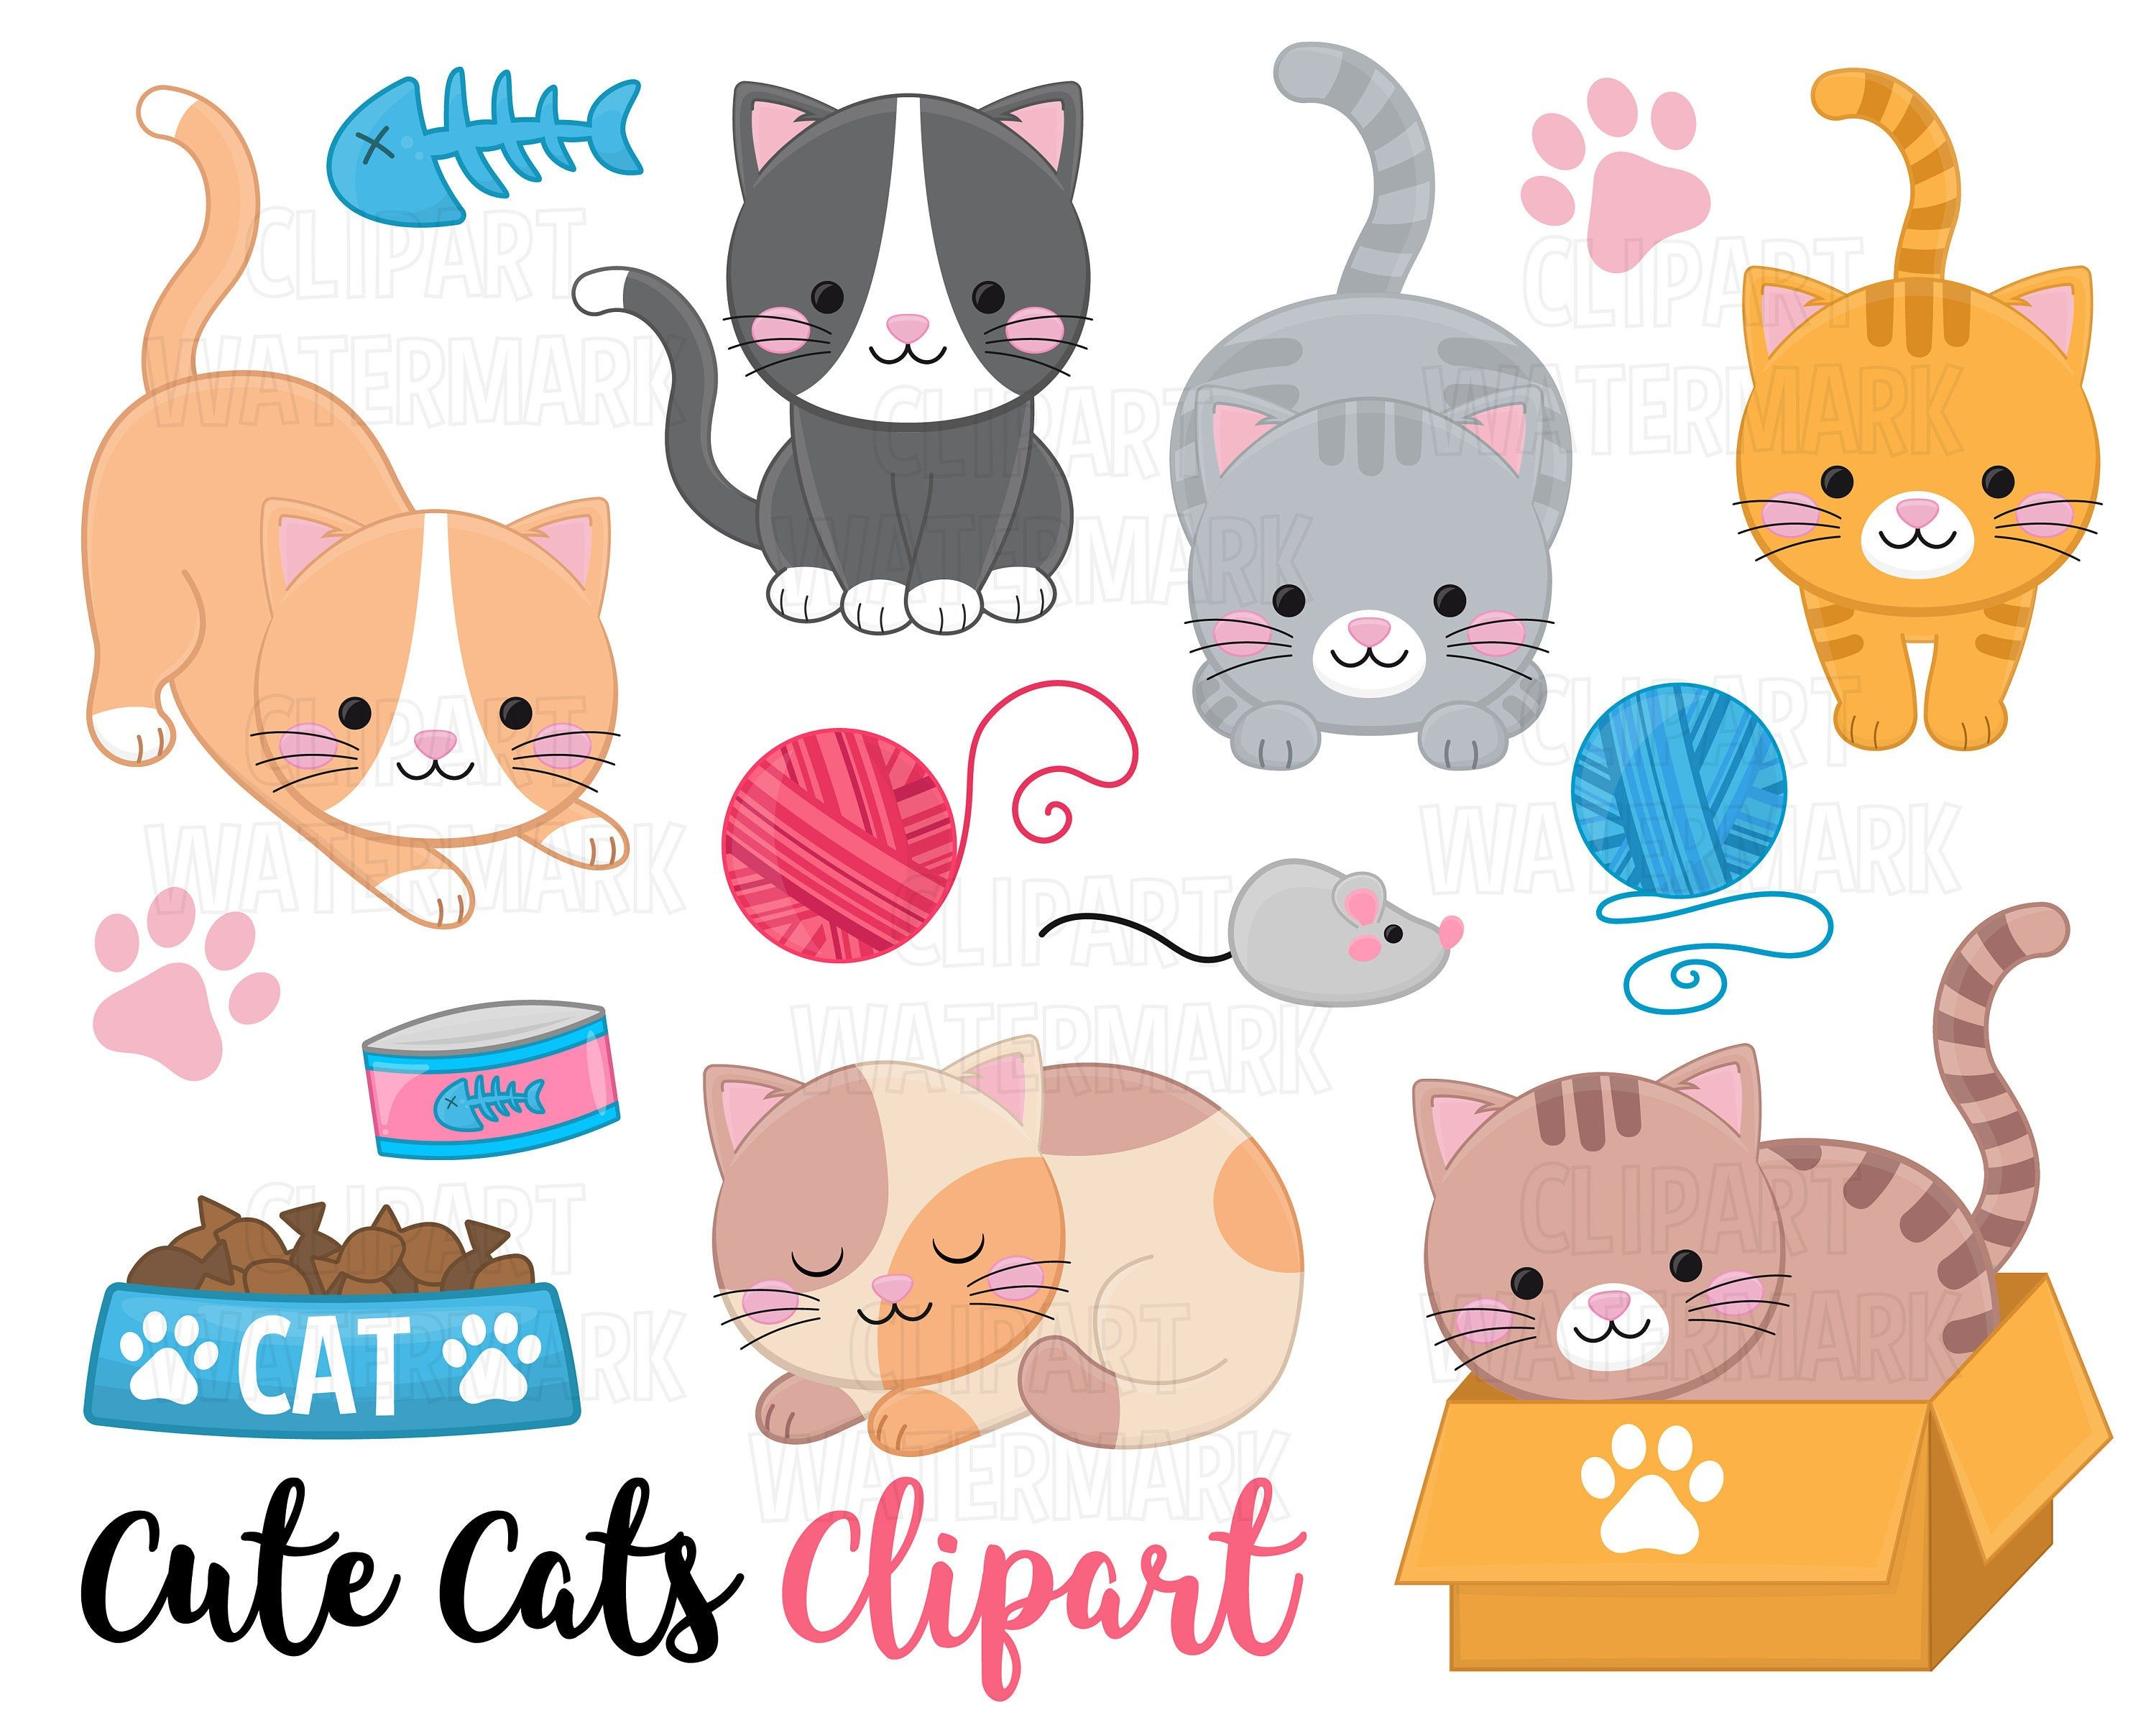 Cats Clipart Cute Kittens And Cats Clip Art Pets Clipart Etsy Cat Clipart Clip Art Kittens Cutest